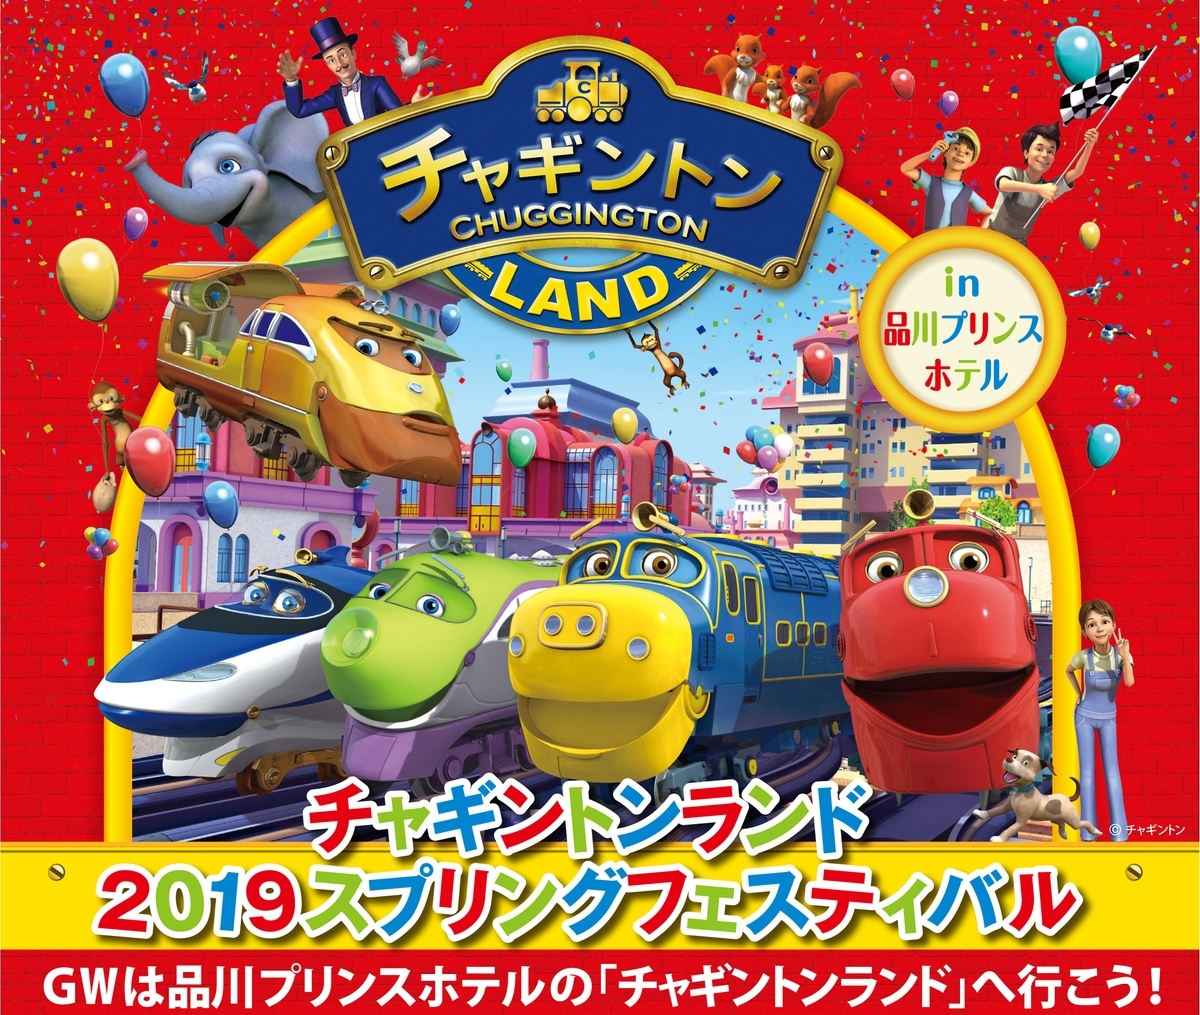 f:id:chuggington-blog:20190430163643j:plain